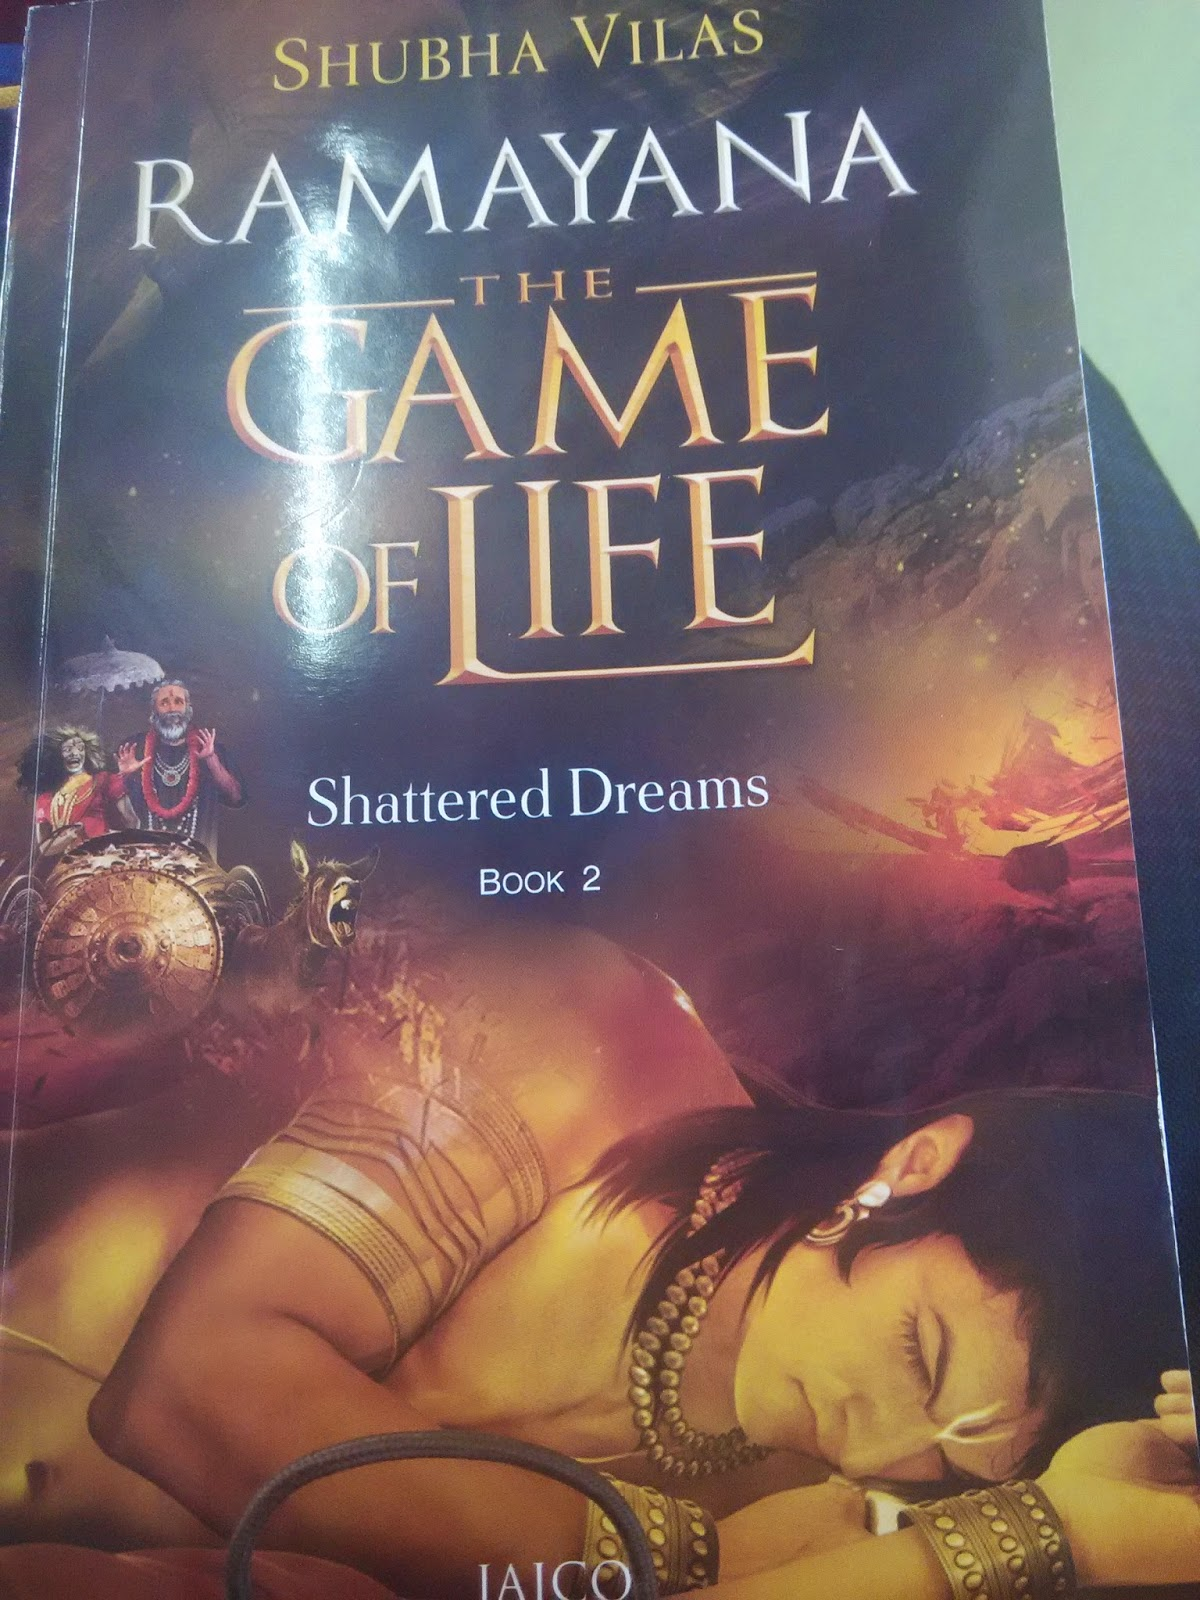 Book Review: Ramayana - The Game of Life, Shattered Dream